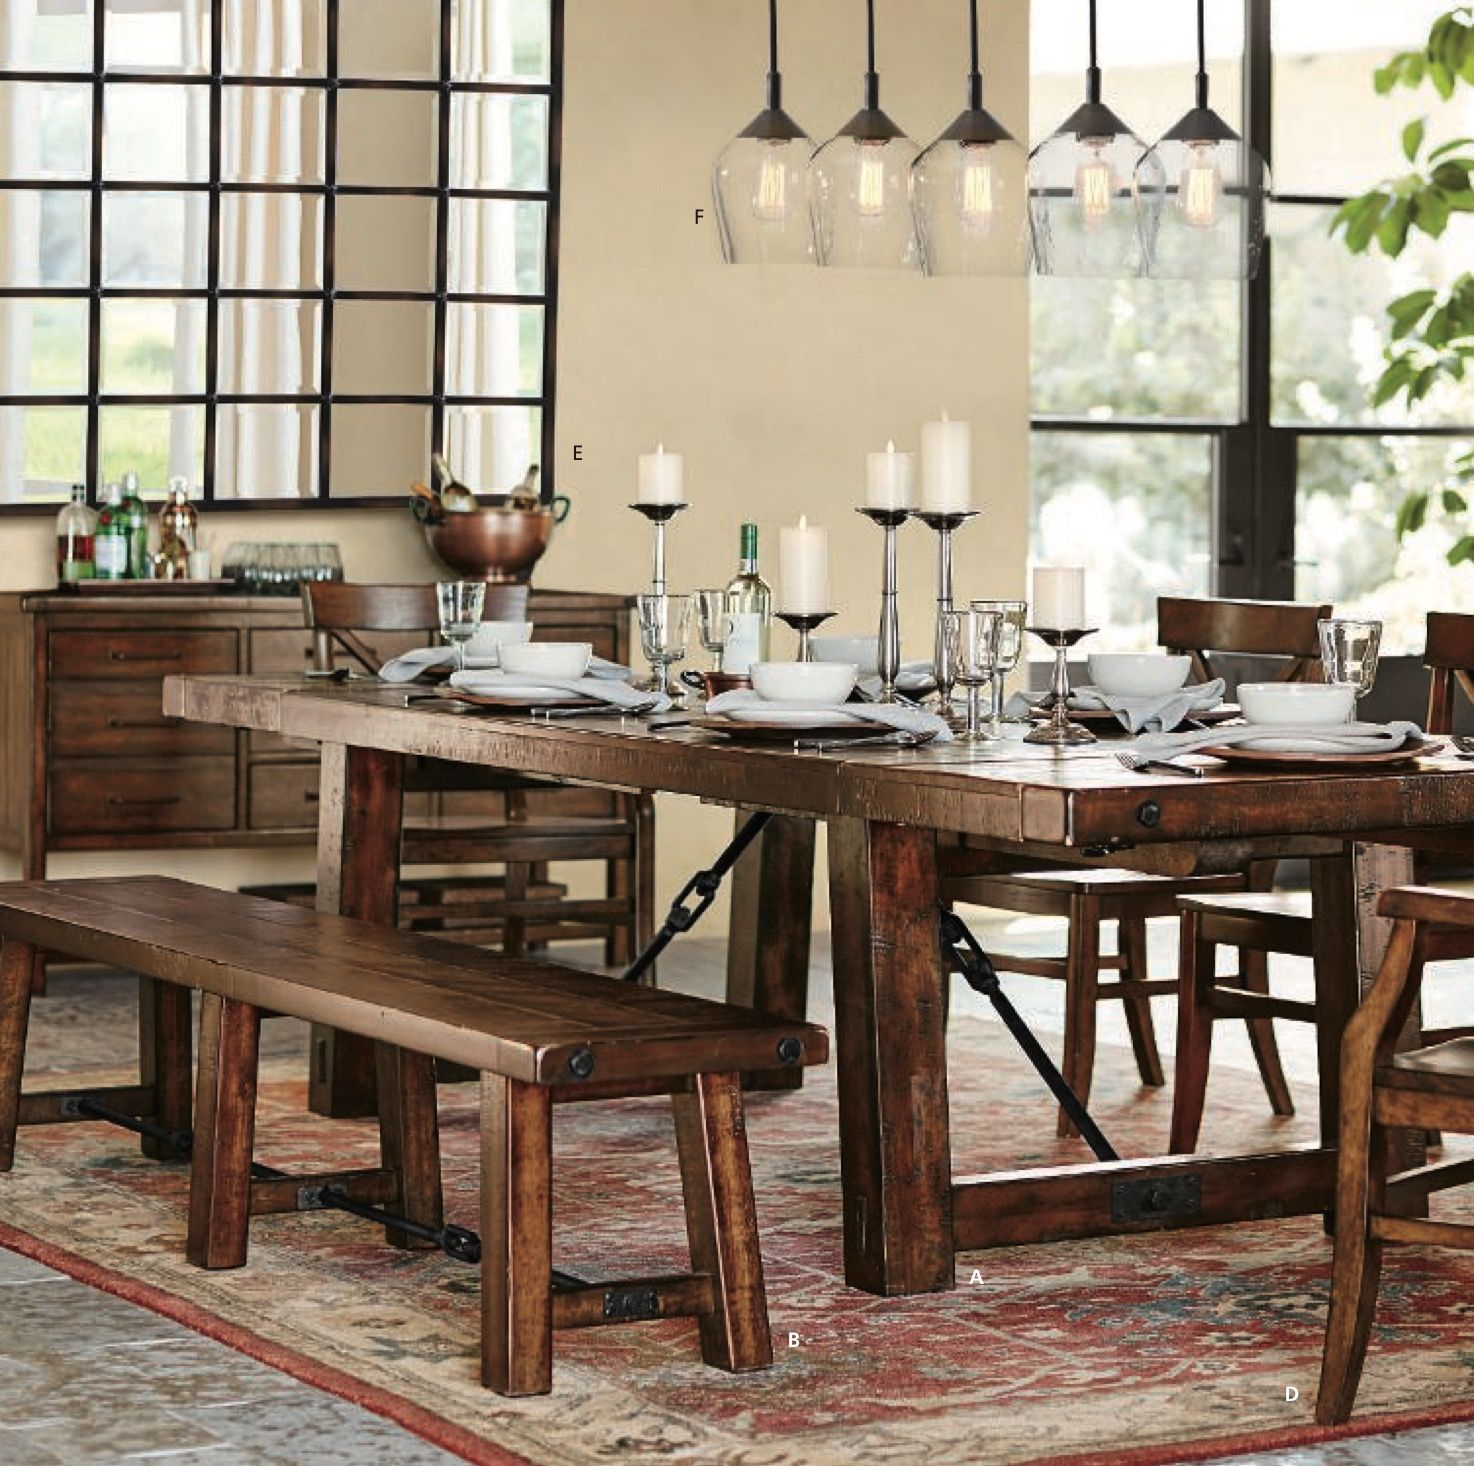 Benchwright Dining Table And Bench Shown In Rustic Mahogany Throughout Most Current Rustic Mahogany Benchwright Dining Tables (View 1 of 25)